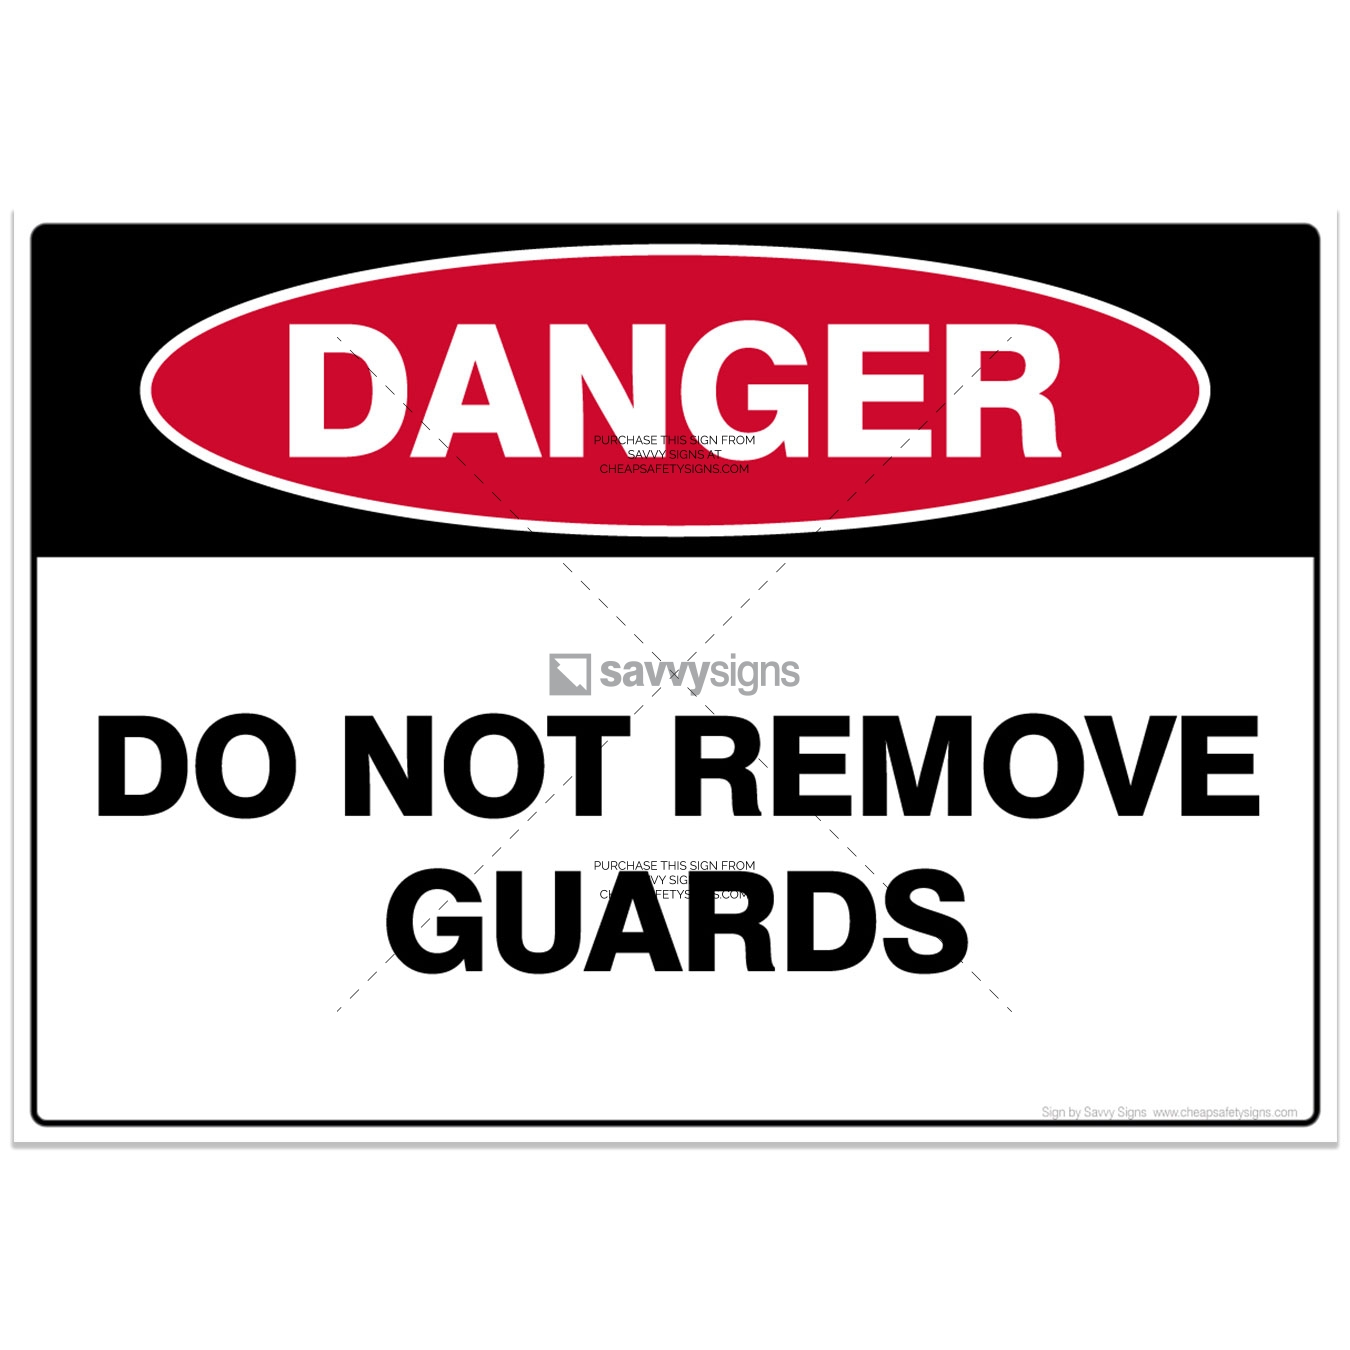 SSDAN3037-DANGER-Workplace-Safety-Signs_Savvy-Signs_v4.1